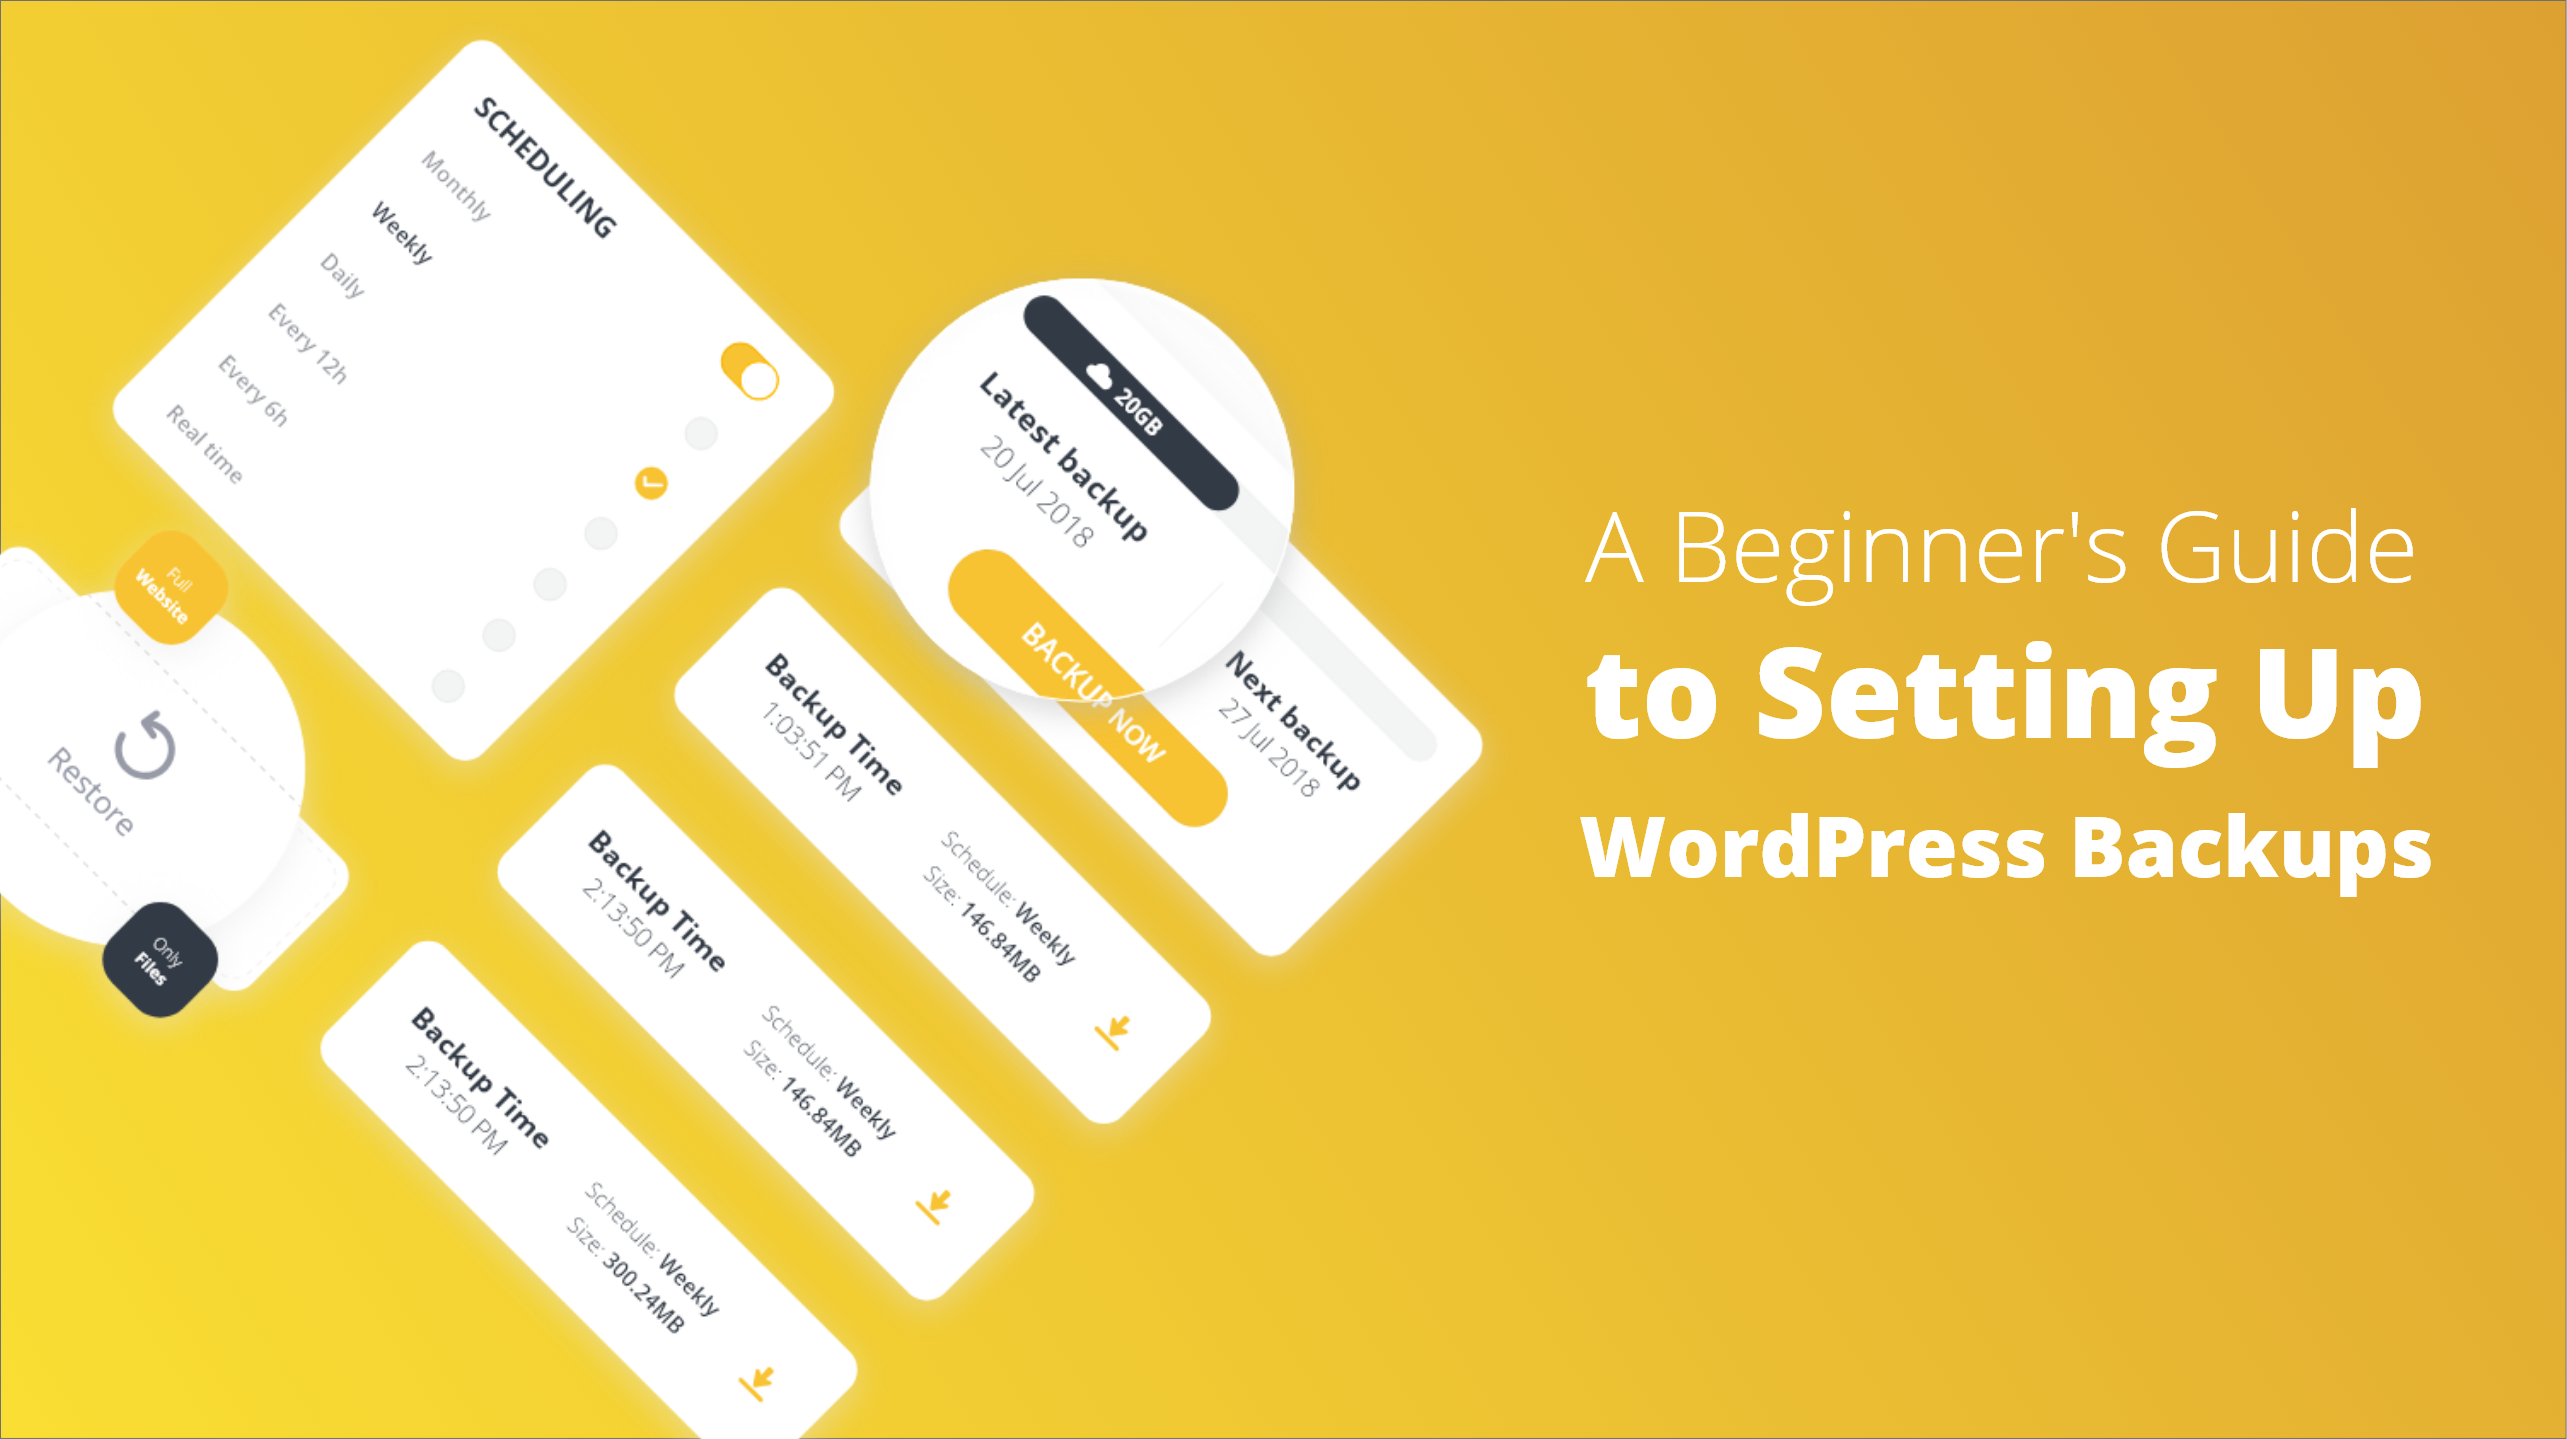 A Beginner's Guide to Setting Up WordPress Backups